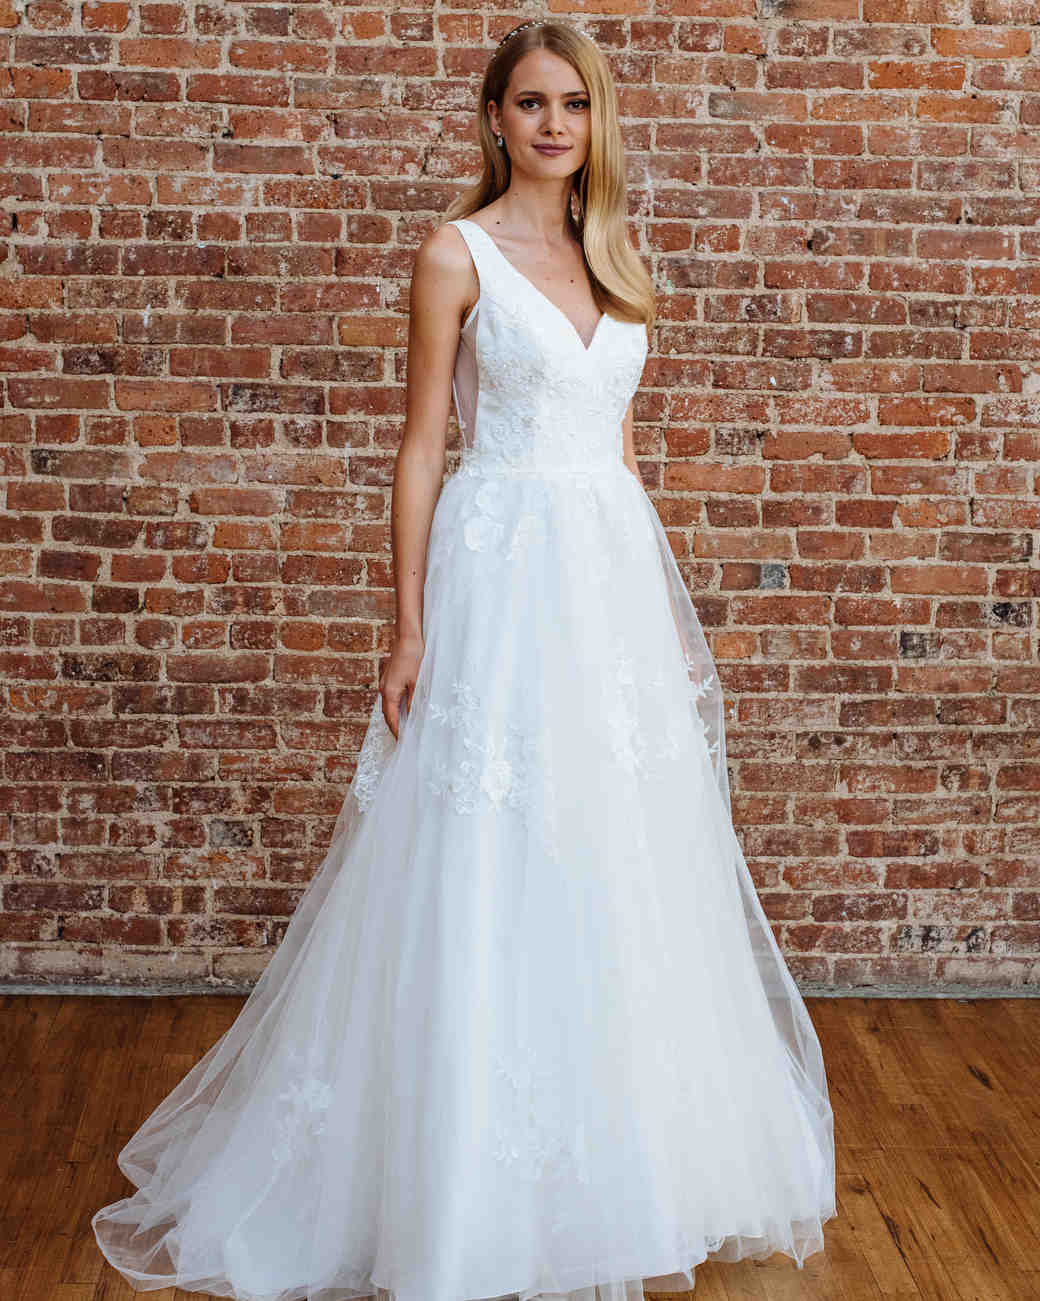 c6ae98f430 David s Bridal Fall 2018 Wedding Dress Collection